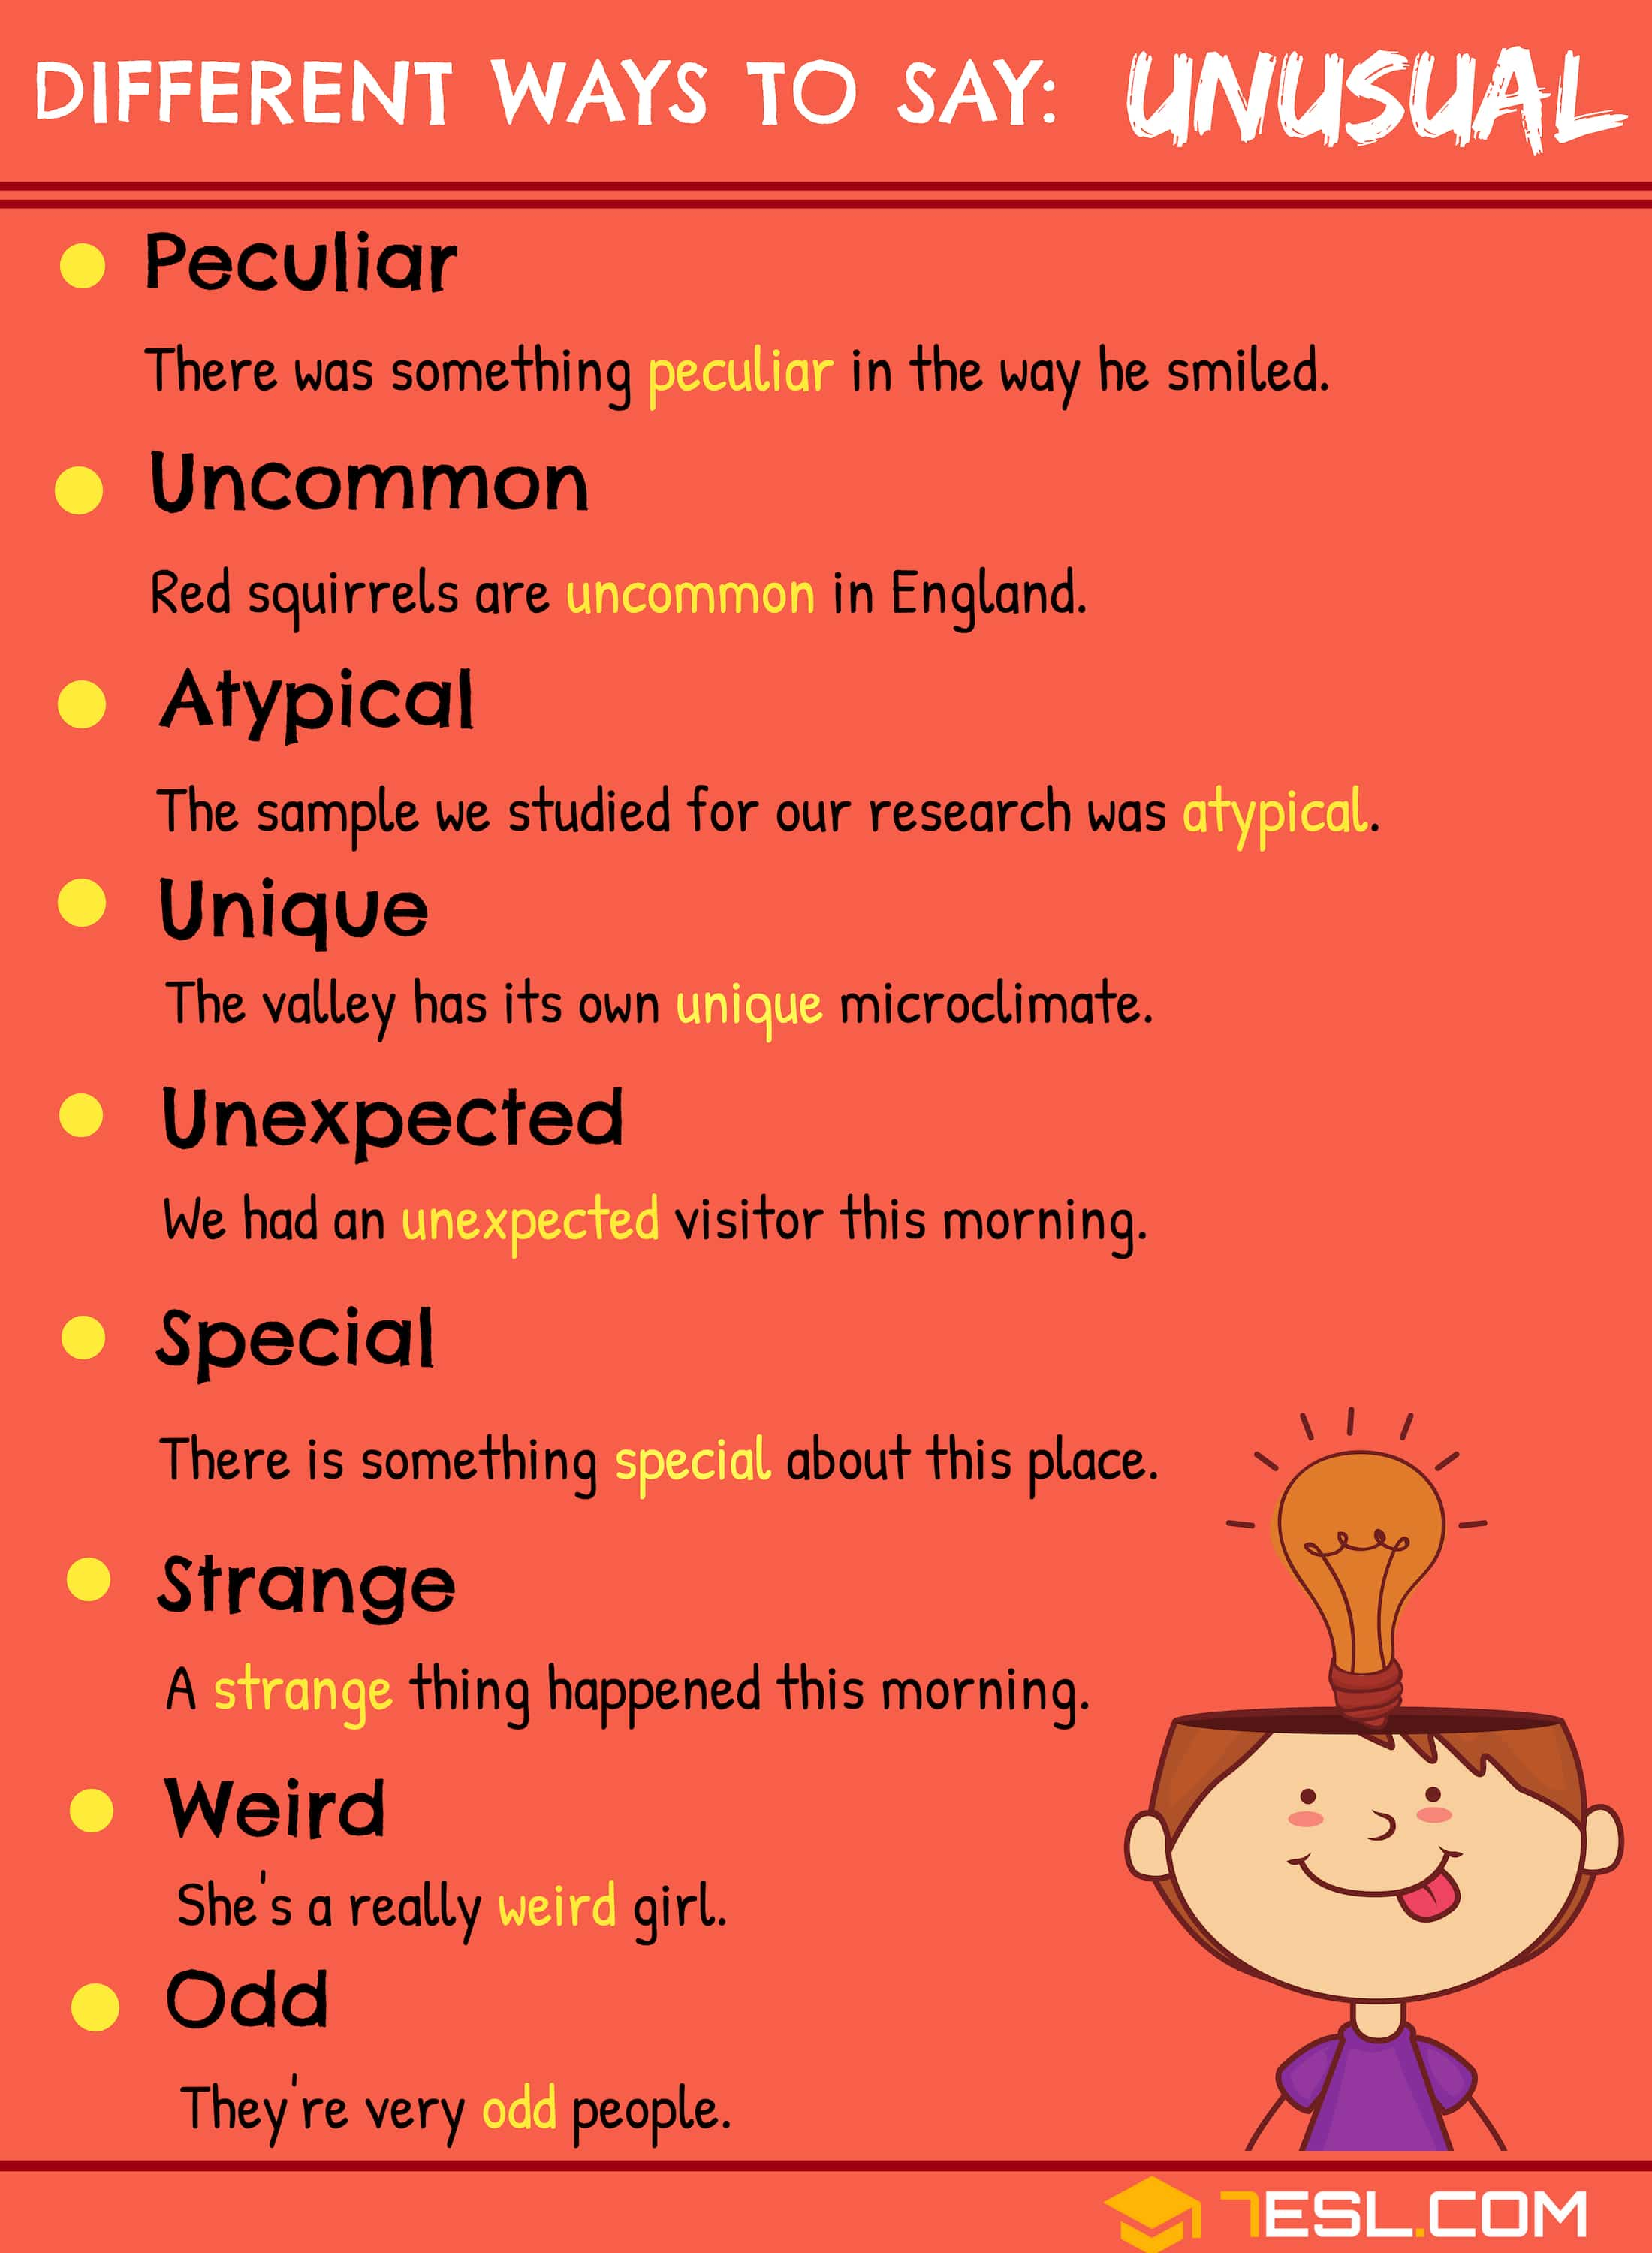 UNUSUAL Synonyms: 10+ Synonyms for Unusual in English